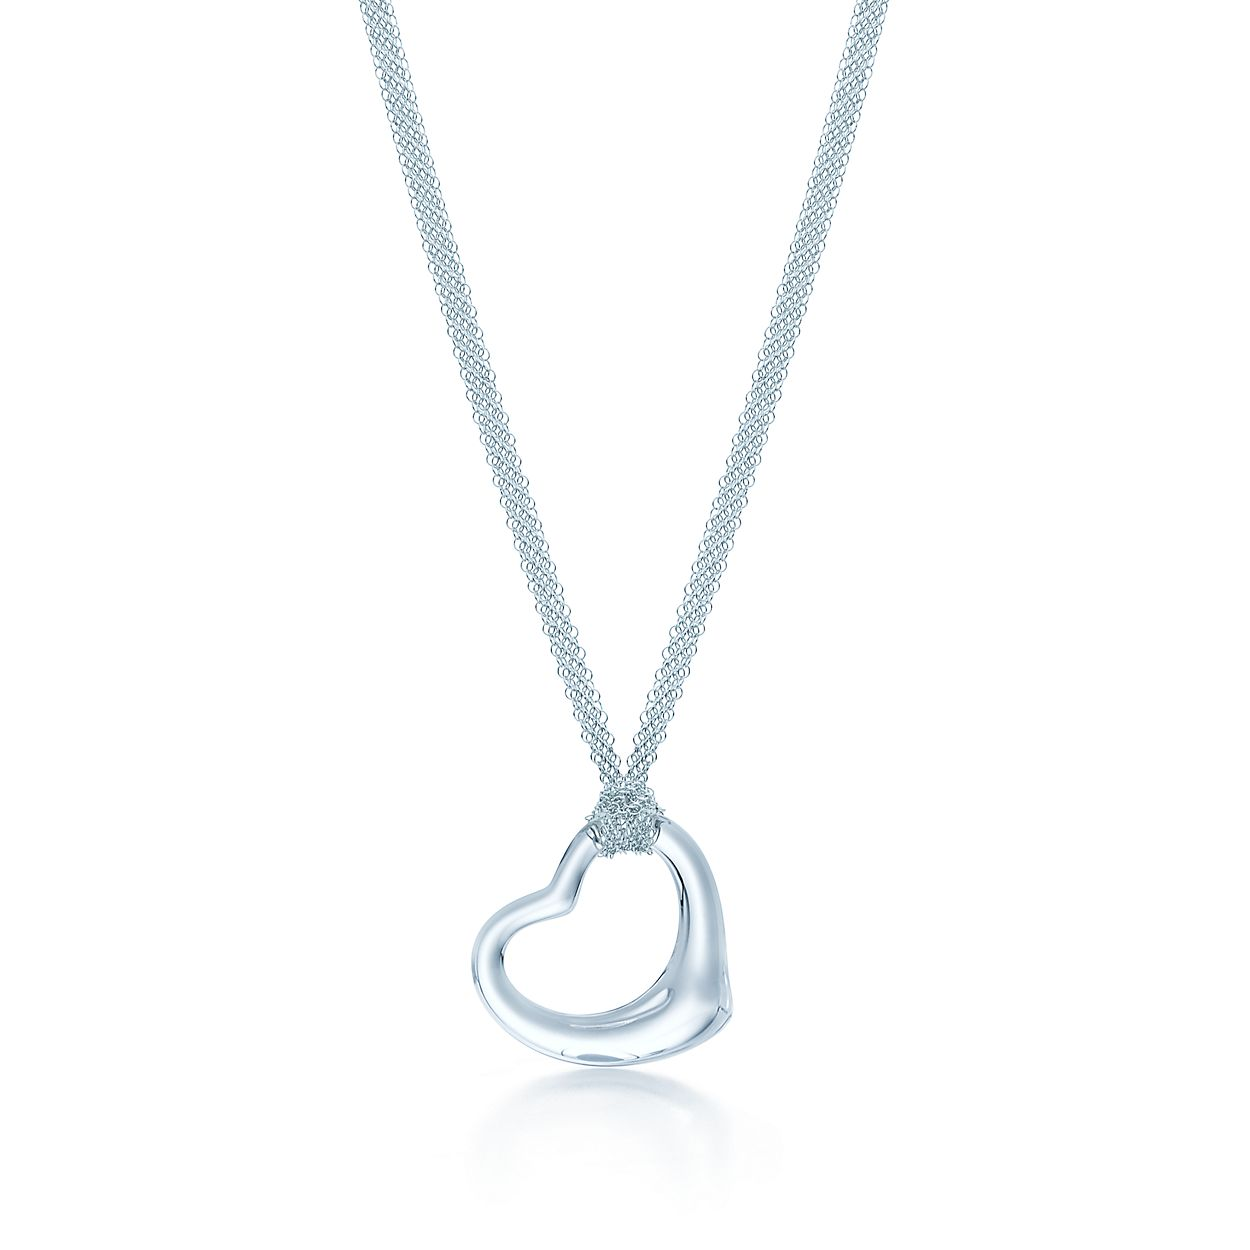 Elsa peretti open heart pendant of rock crystal and sterling silver elsa perettiopen heart pendant aloadofball Images